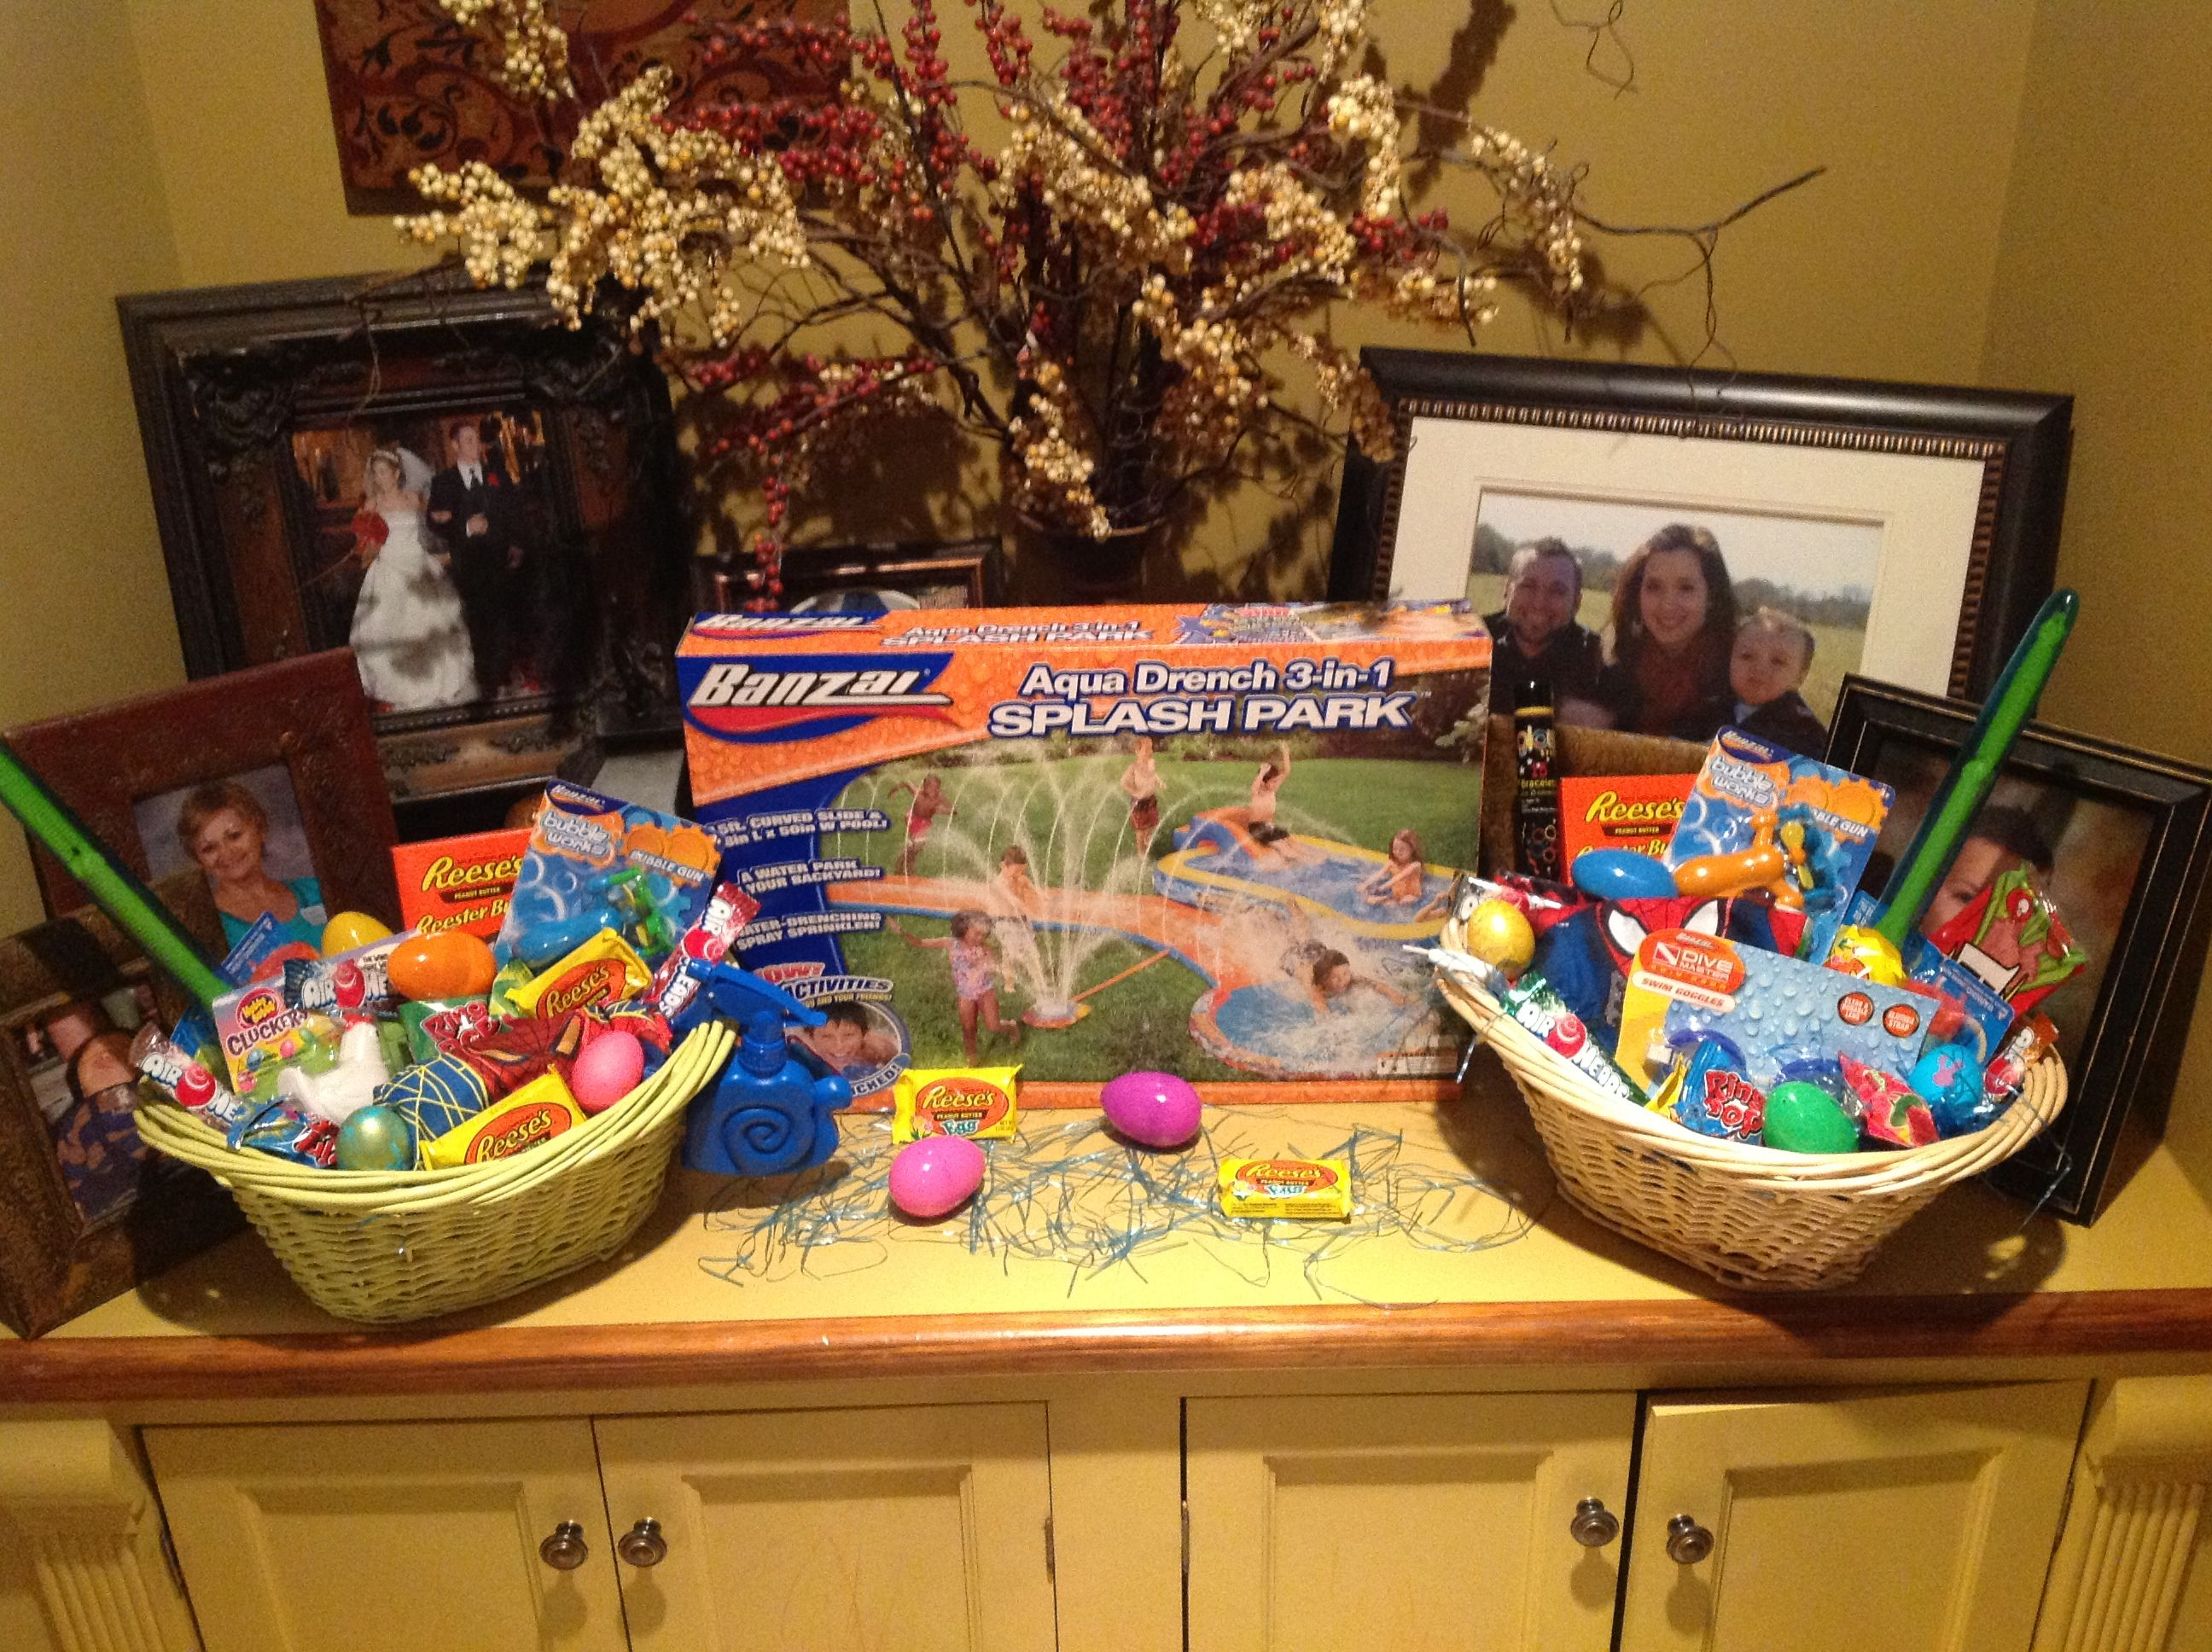 My boys easter baskets lots of little inexpensive items like my boys easter baskets lots of little inexpensive items like bubble guns goggles negle Image collections